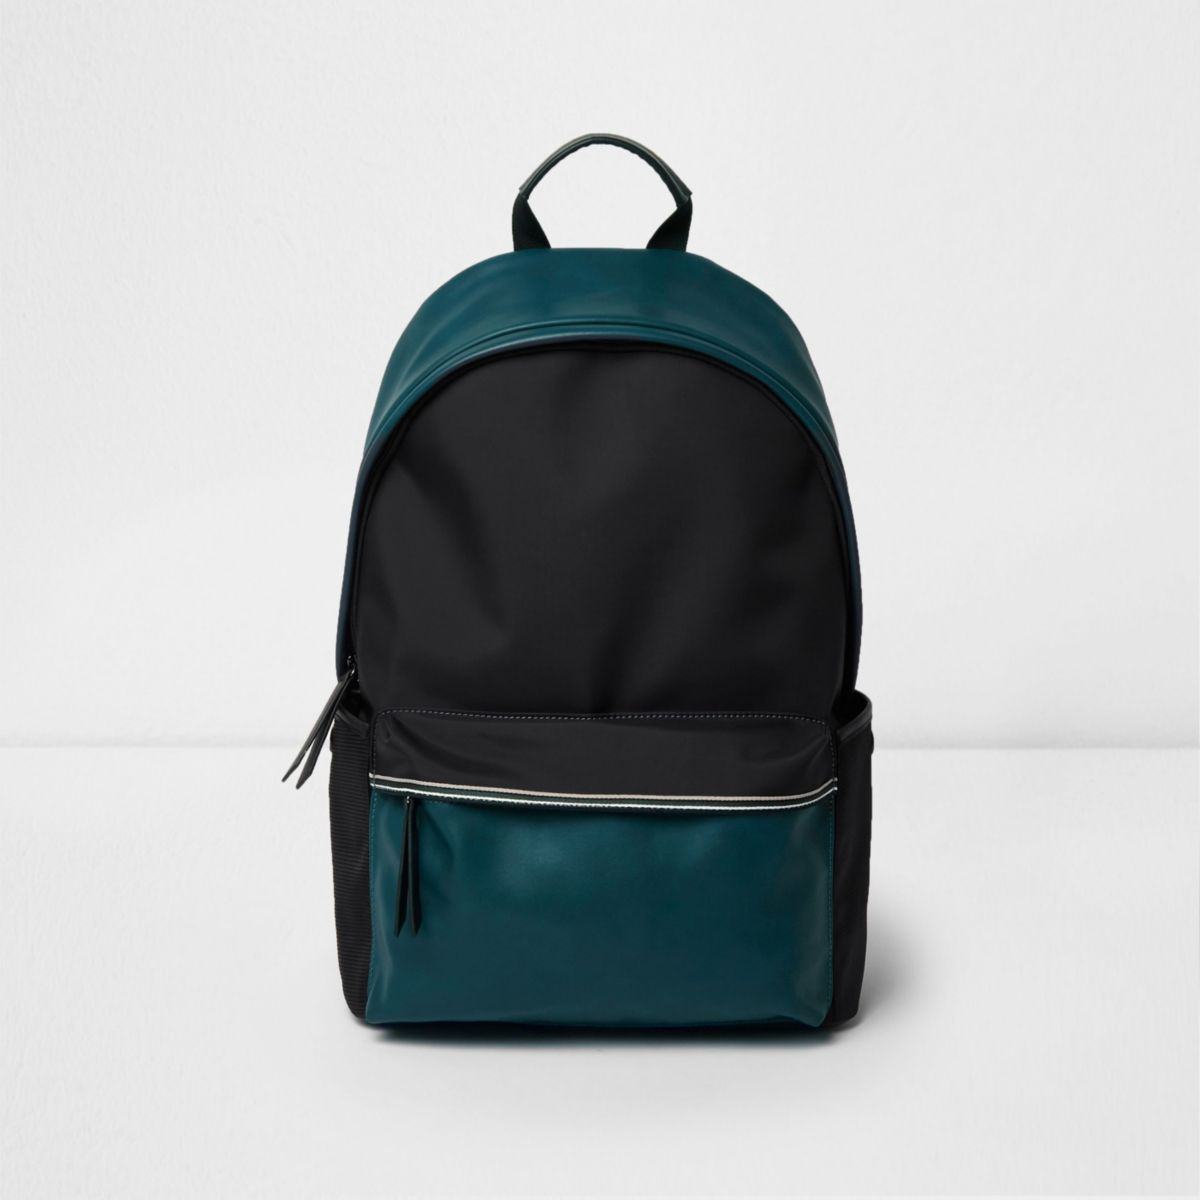 Black color block backpack